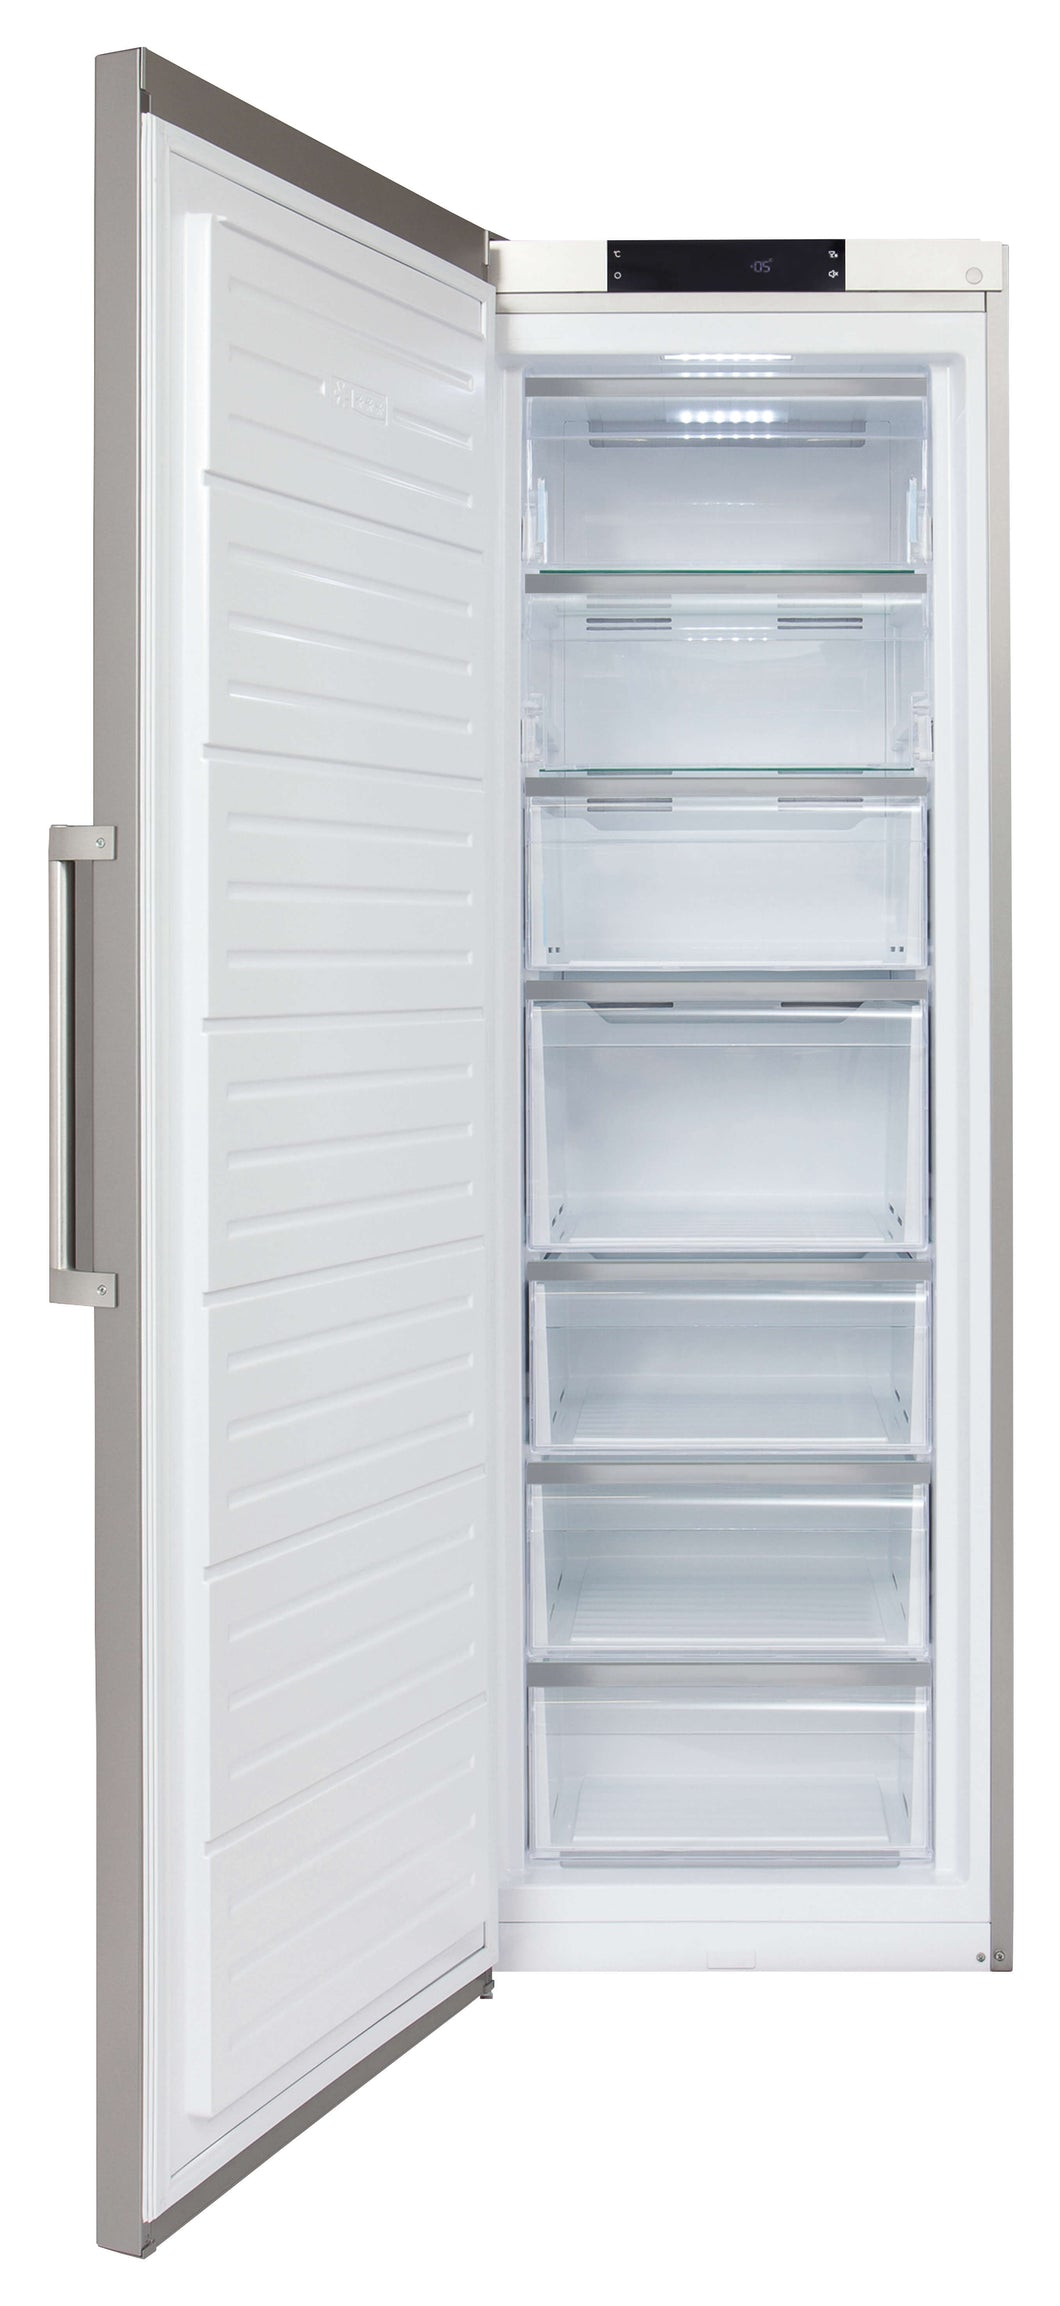 Amazing full height freestanding tall freezer with 7 compartments and 280L capacity-CDA-ChillingWine